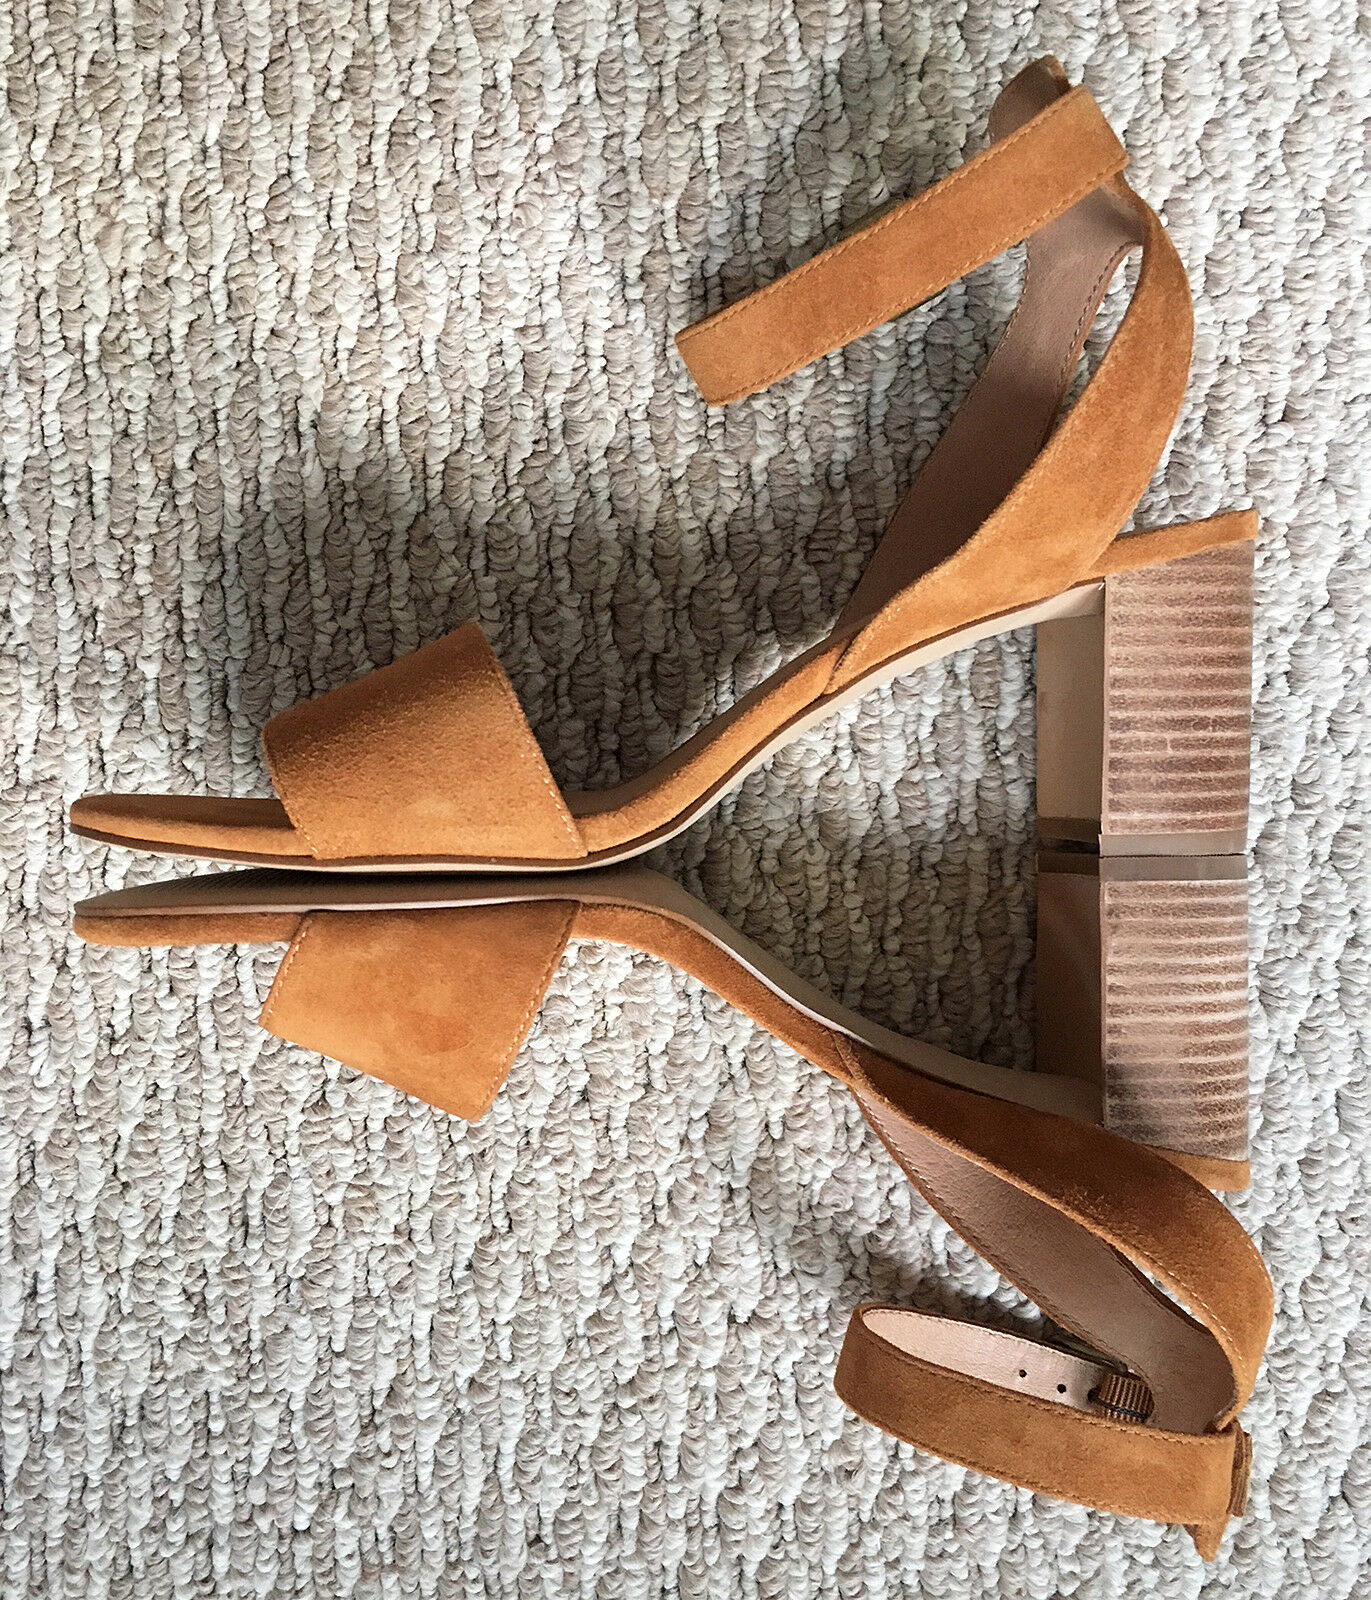 NWOB Madewell Amber Claudia Sandal in Amber Madewell braun Suede - 9 863d5e